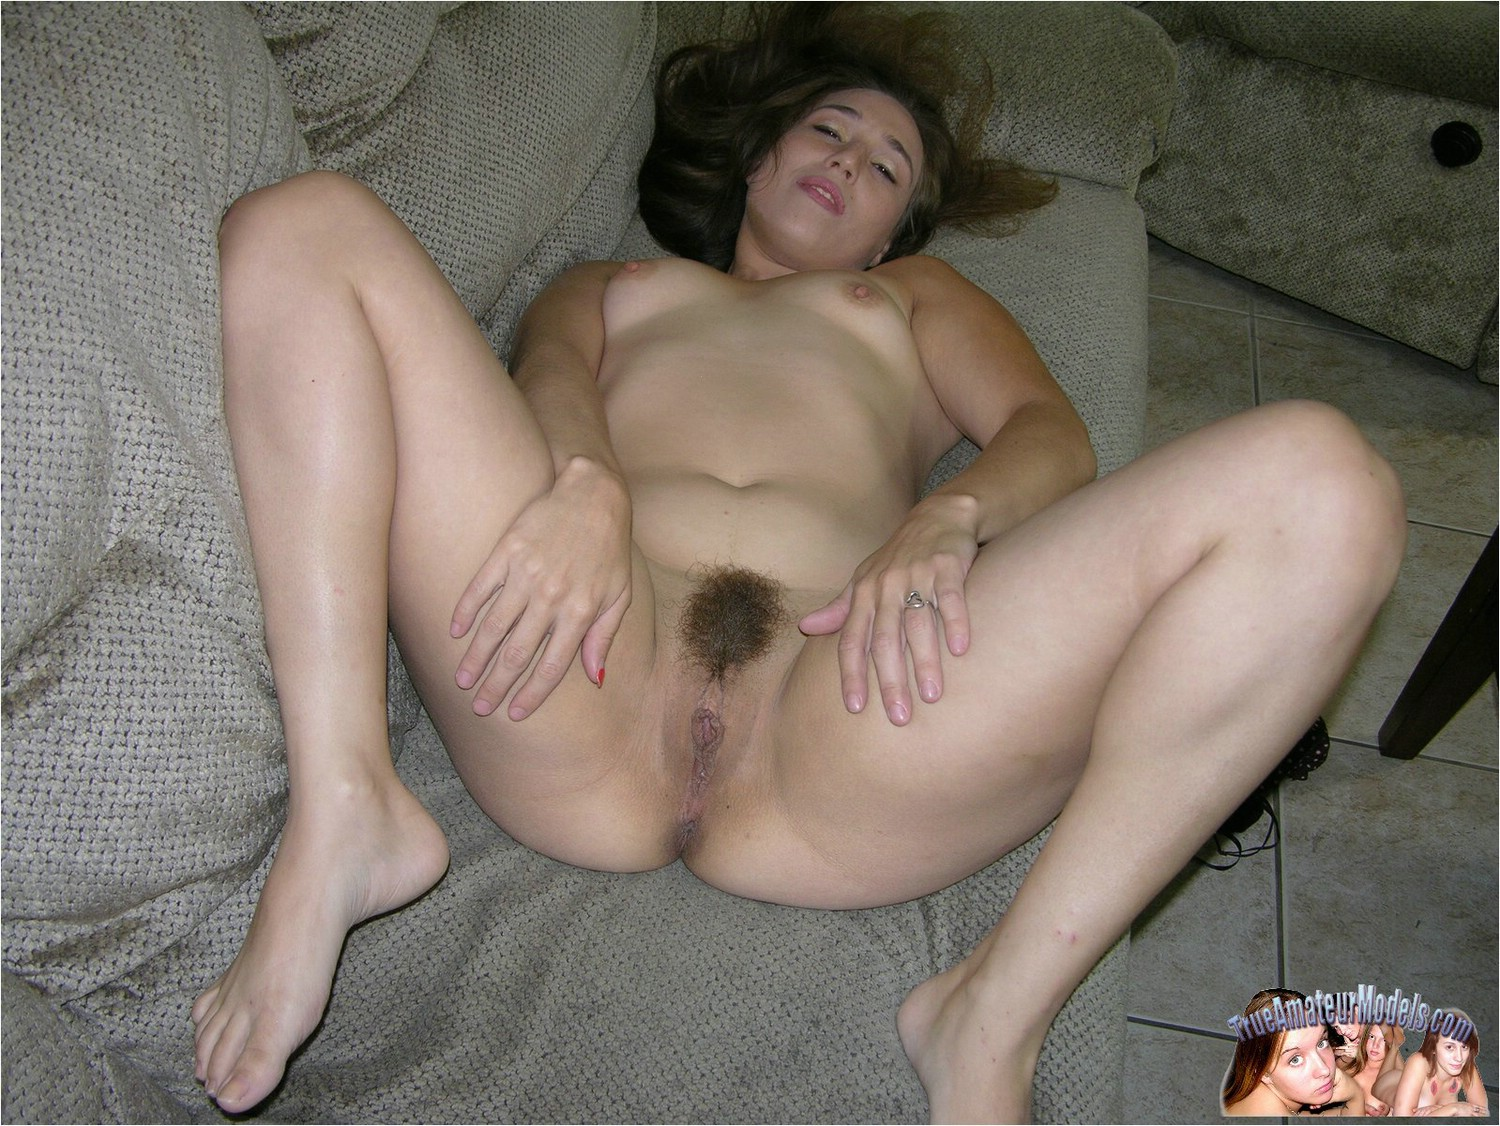 hot 30 year old pussy